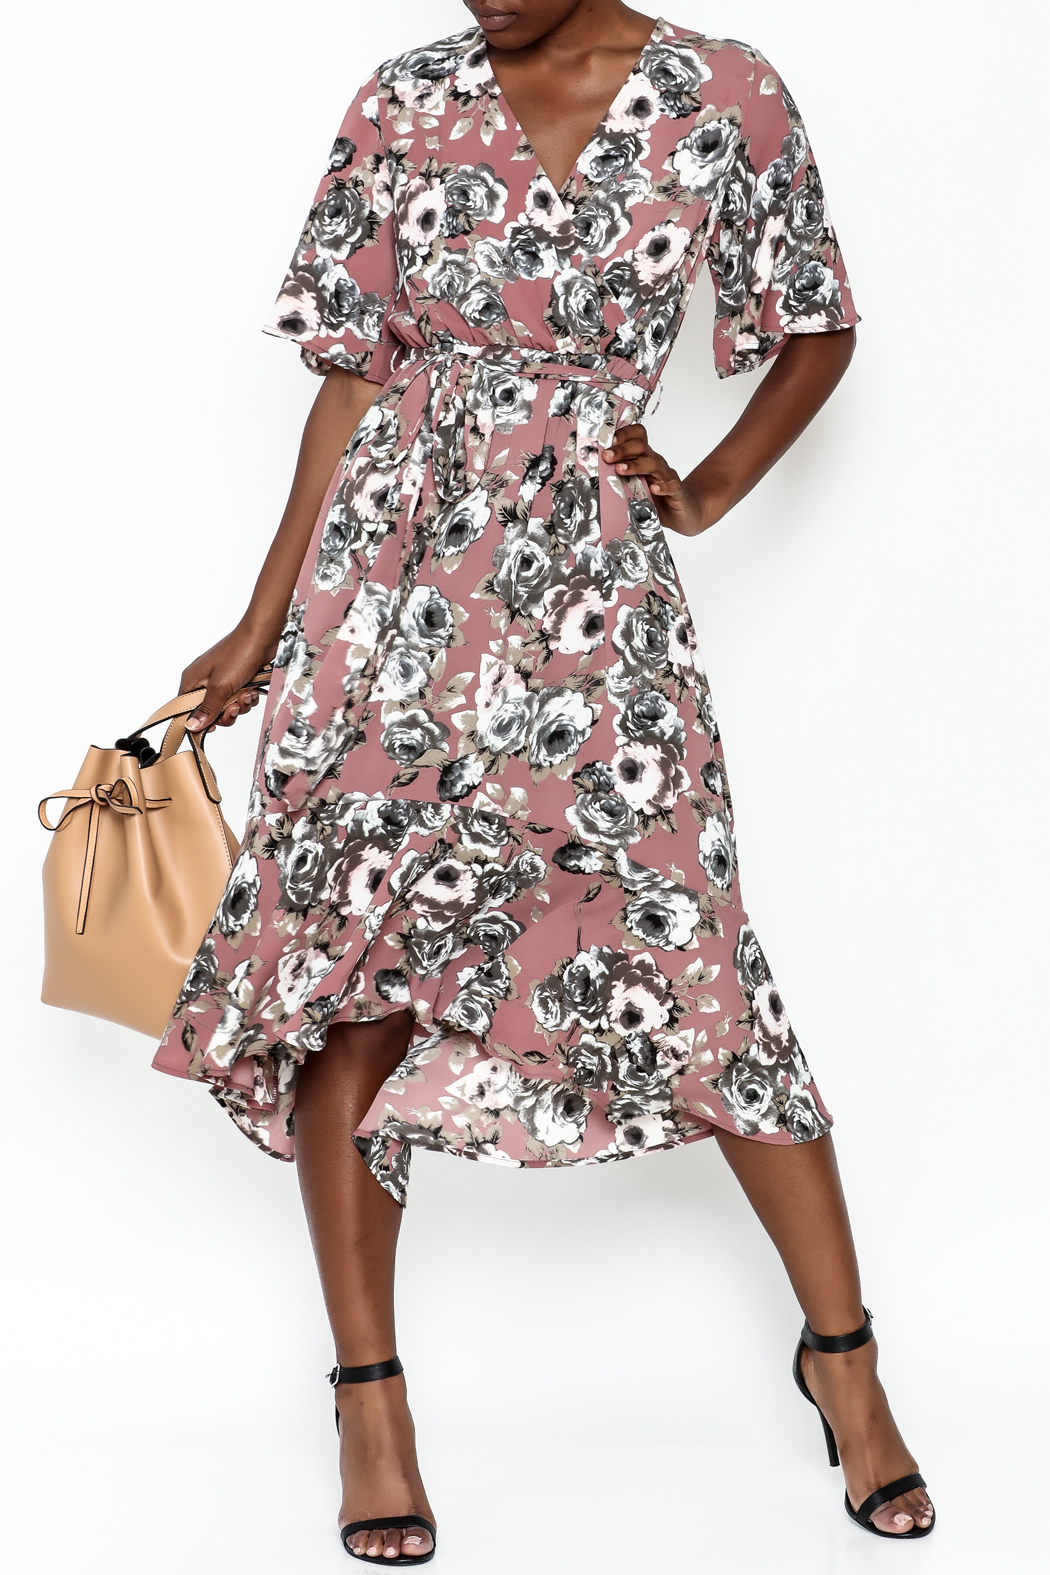 Chris & Carol Mauve Floral Dress - Main Image